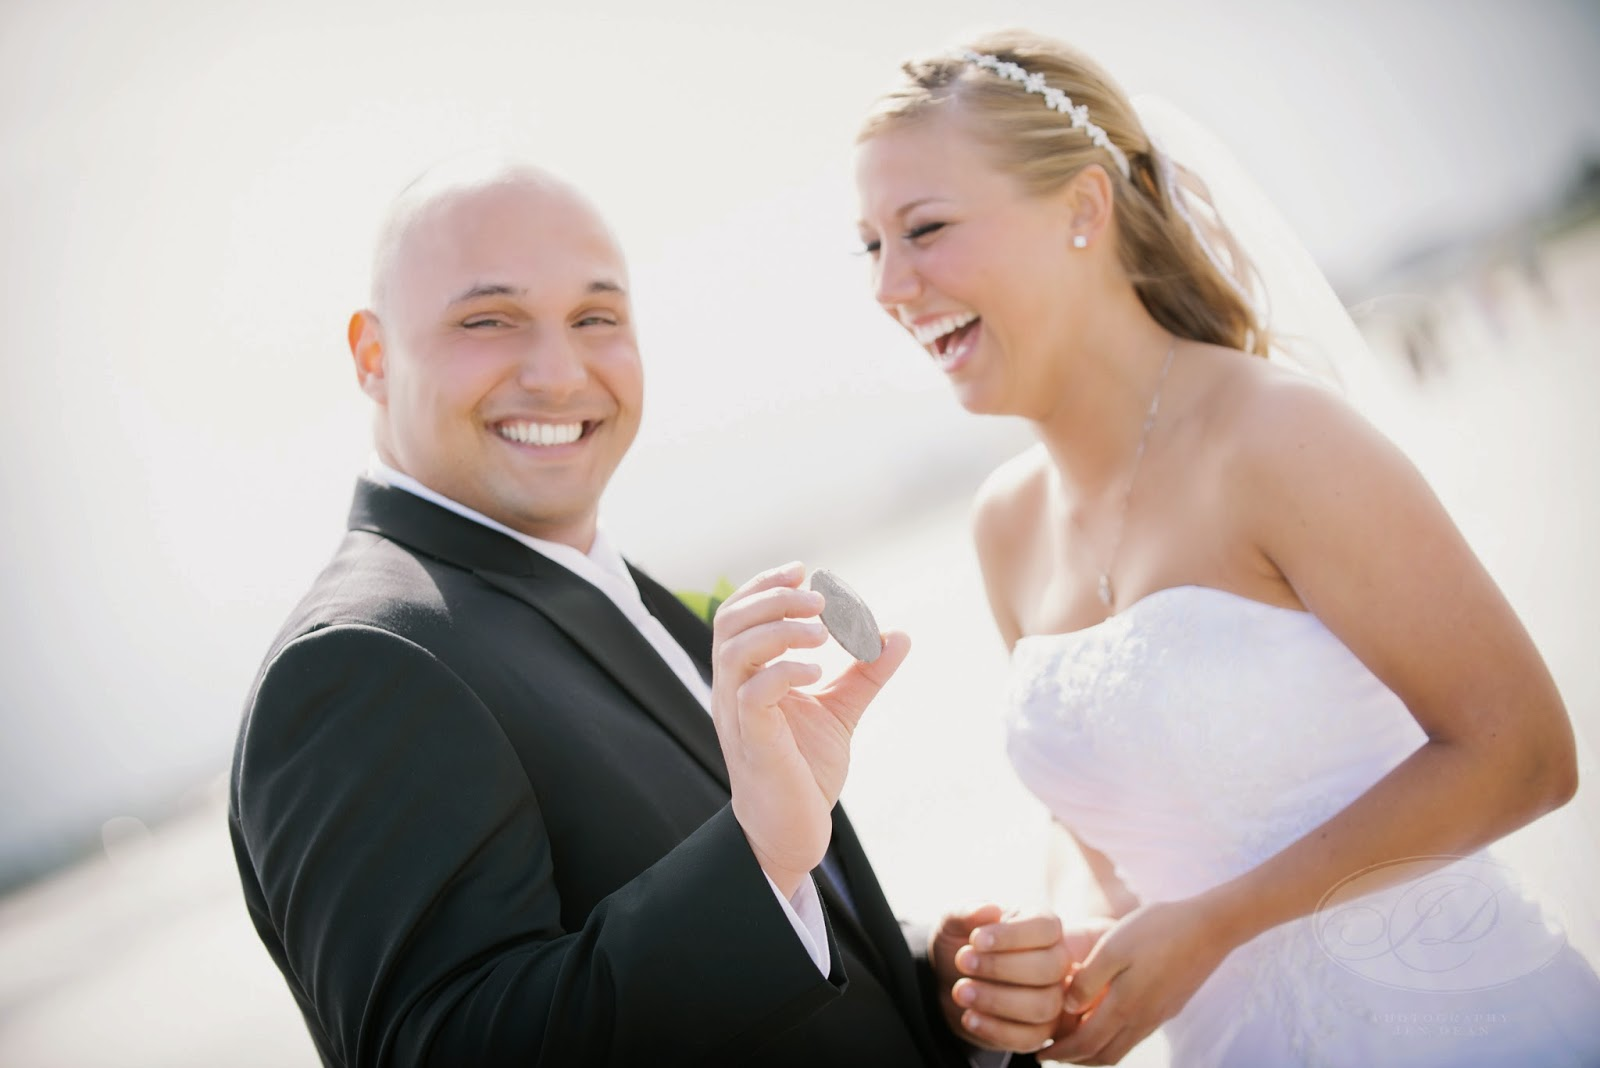 Lettrine marriage at first sight